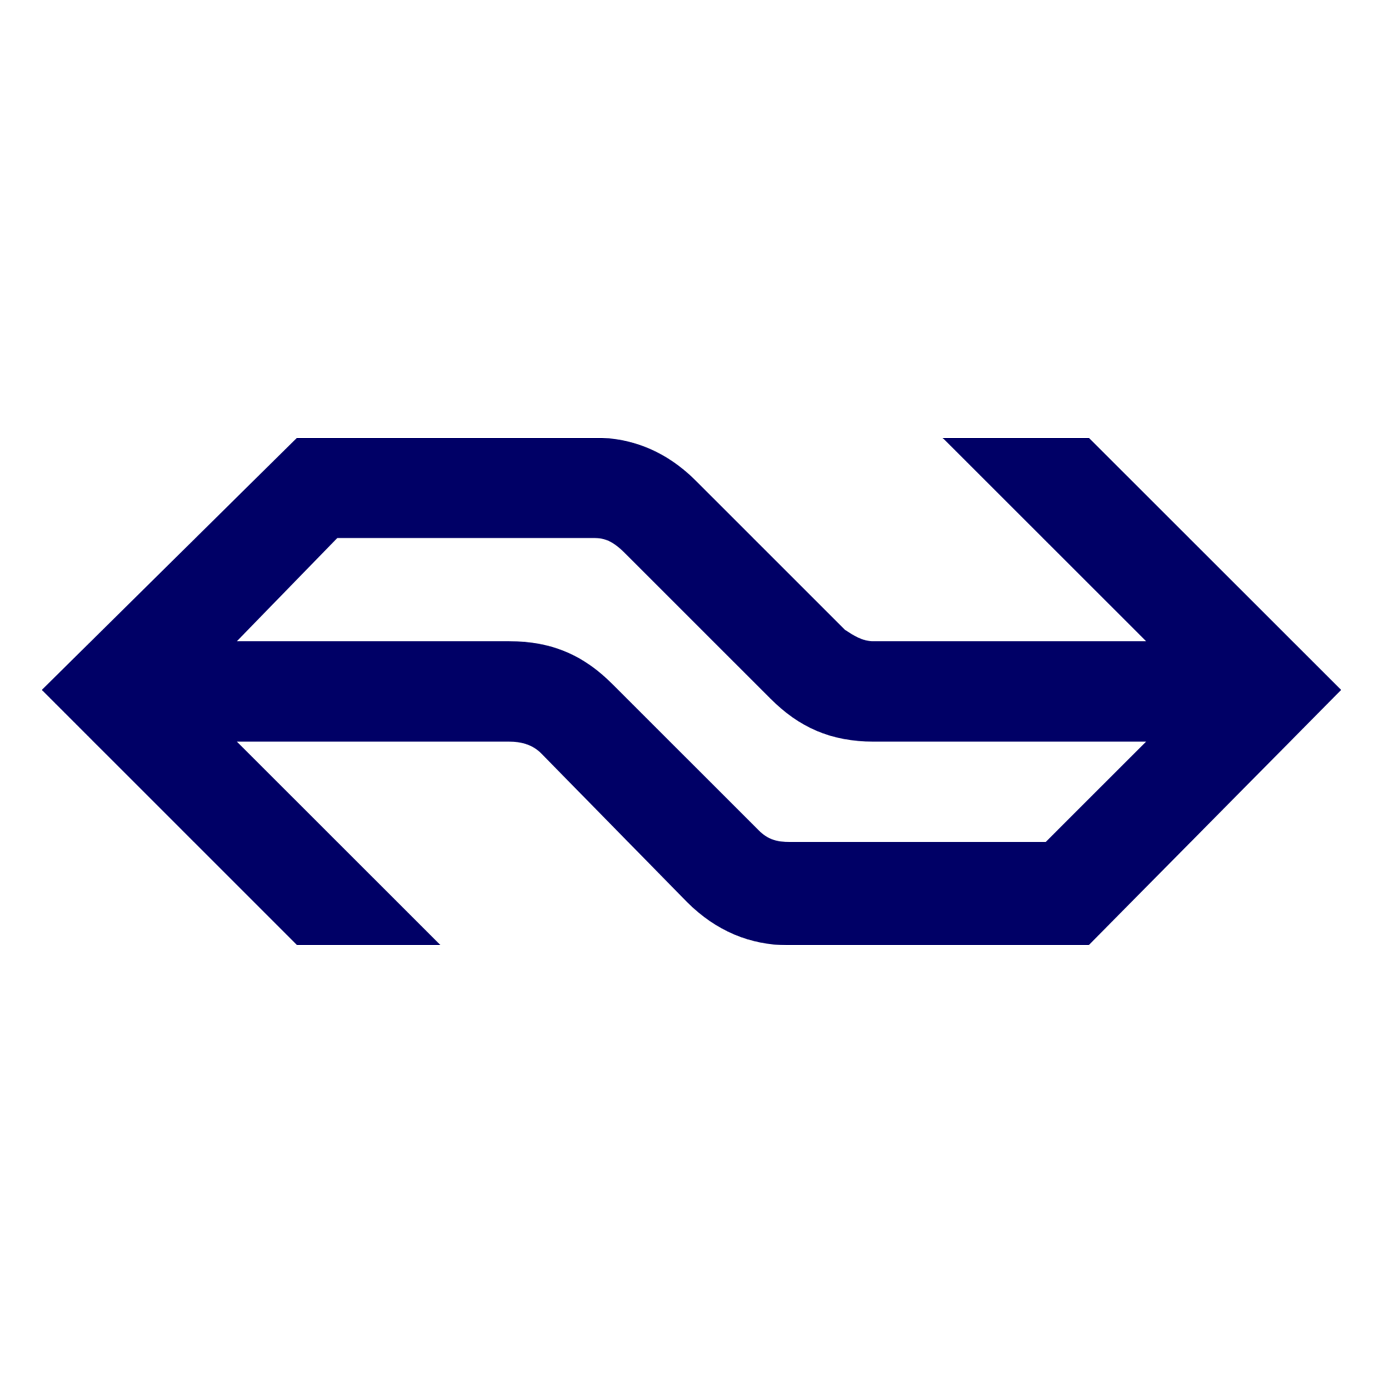 National railroads-NS-logo.png